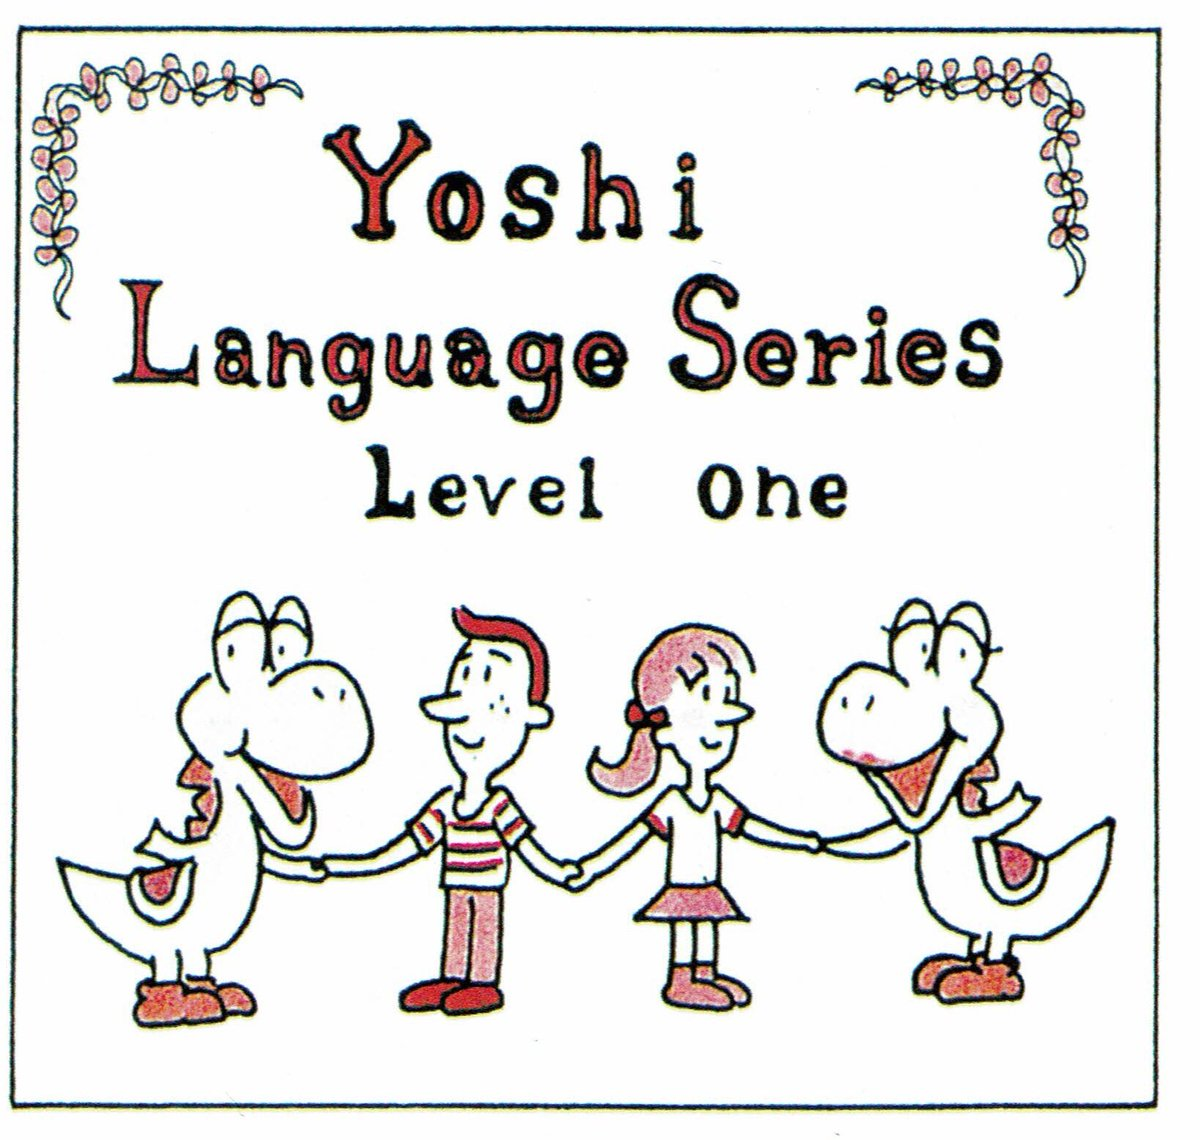 Yoshi Language Series: Level 1 - from Super Mario Adventures. https://t.co/jeIjlEd6g0